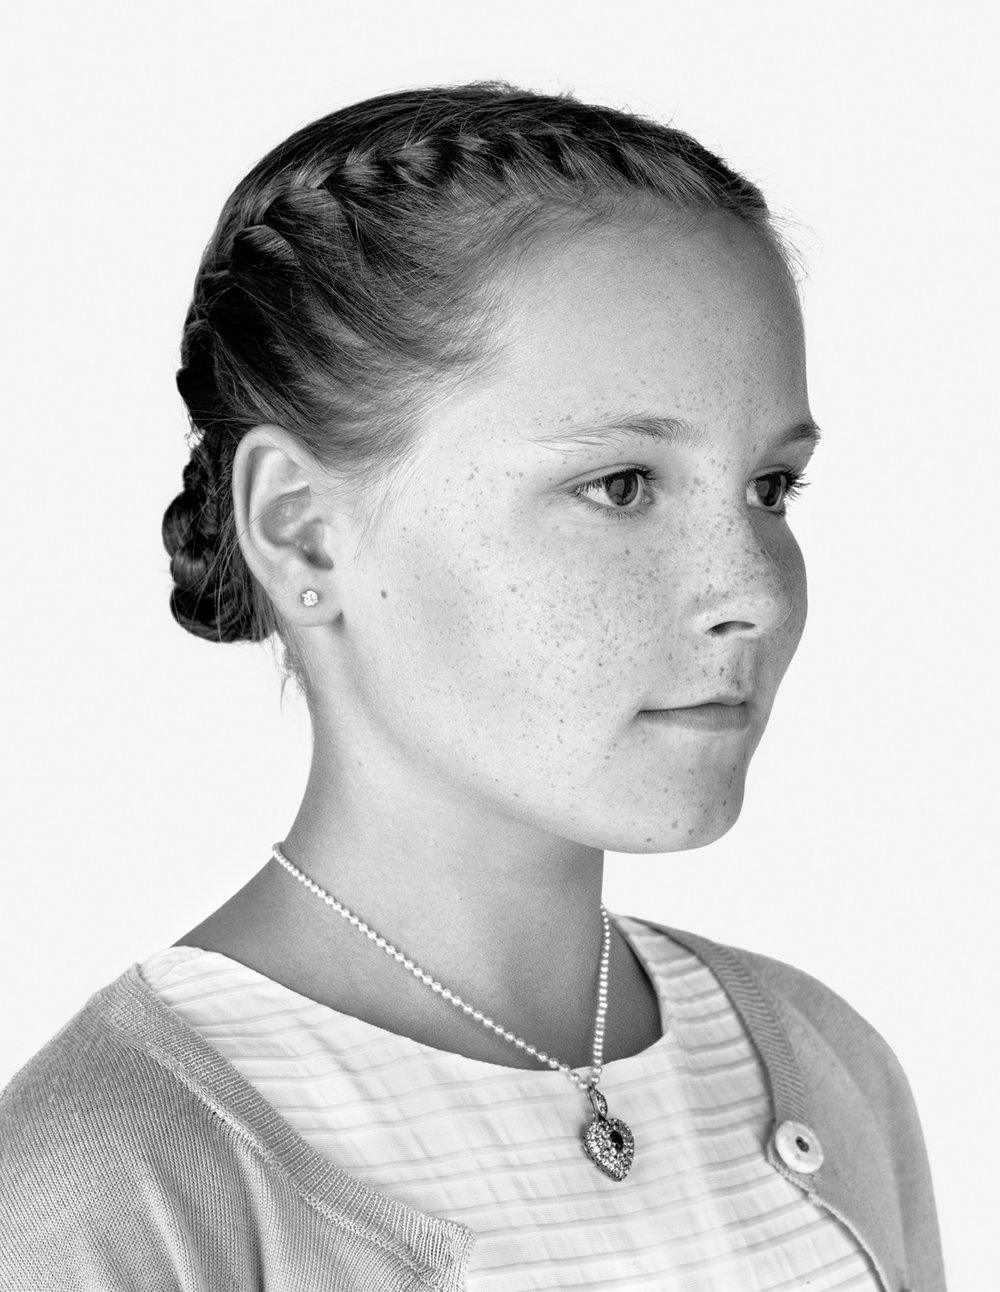 Her Royal Highness Princess Ingrid Alexandra